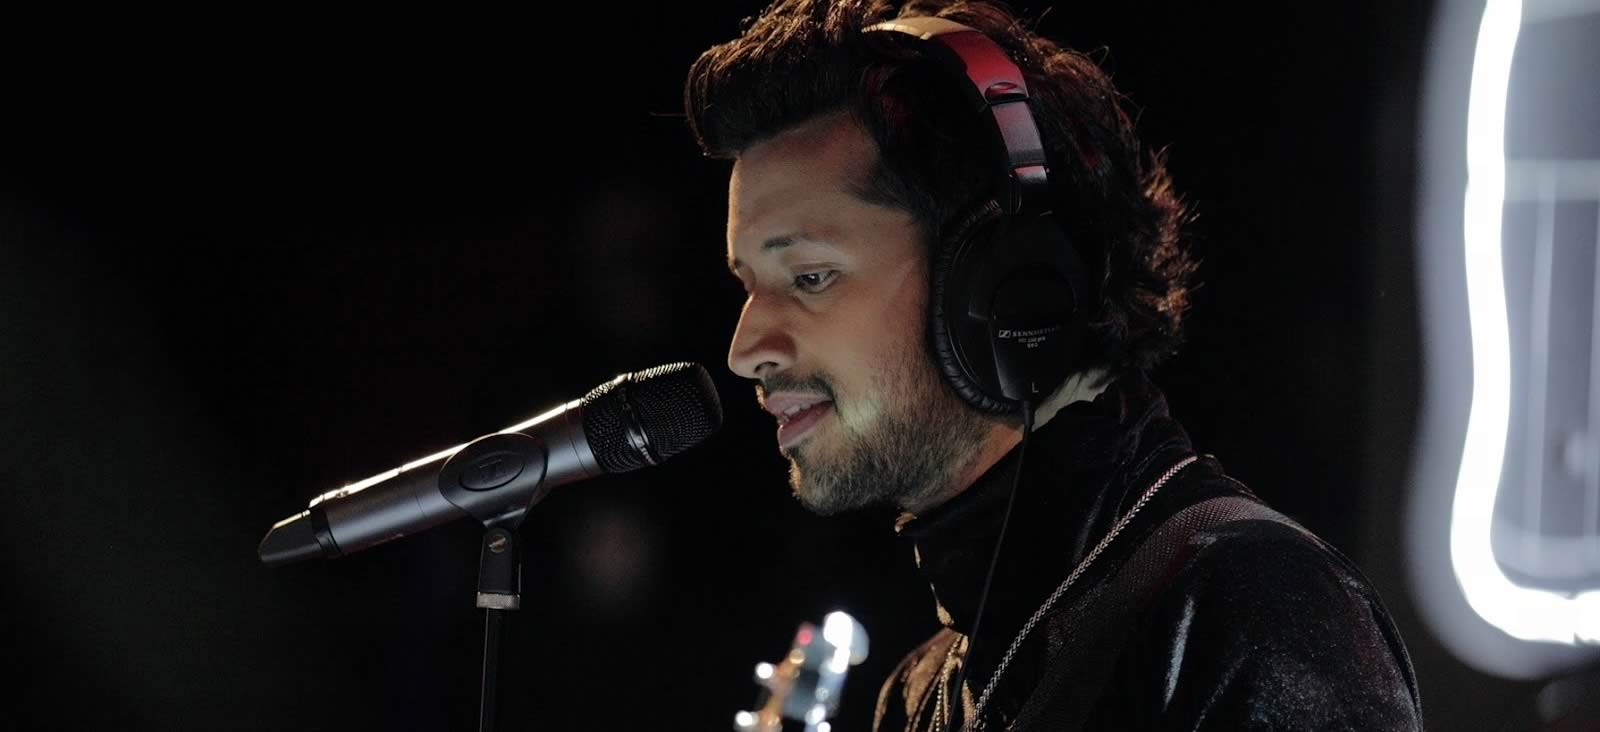 Atif Aslam is the singing superstar from Pakistan who can make any ...